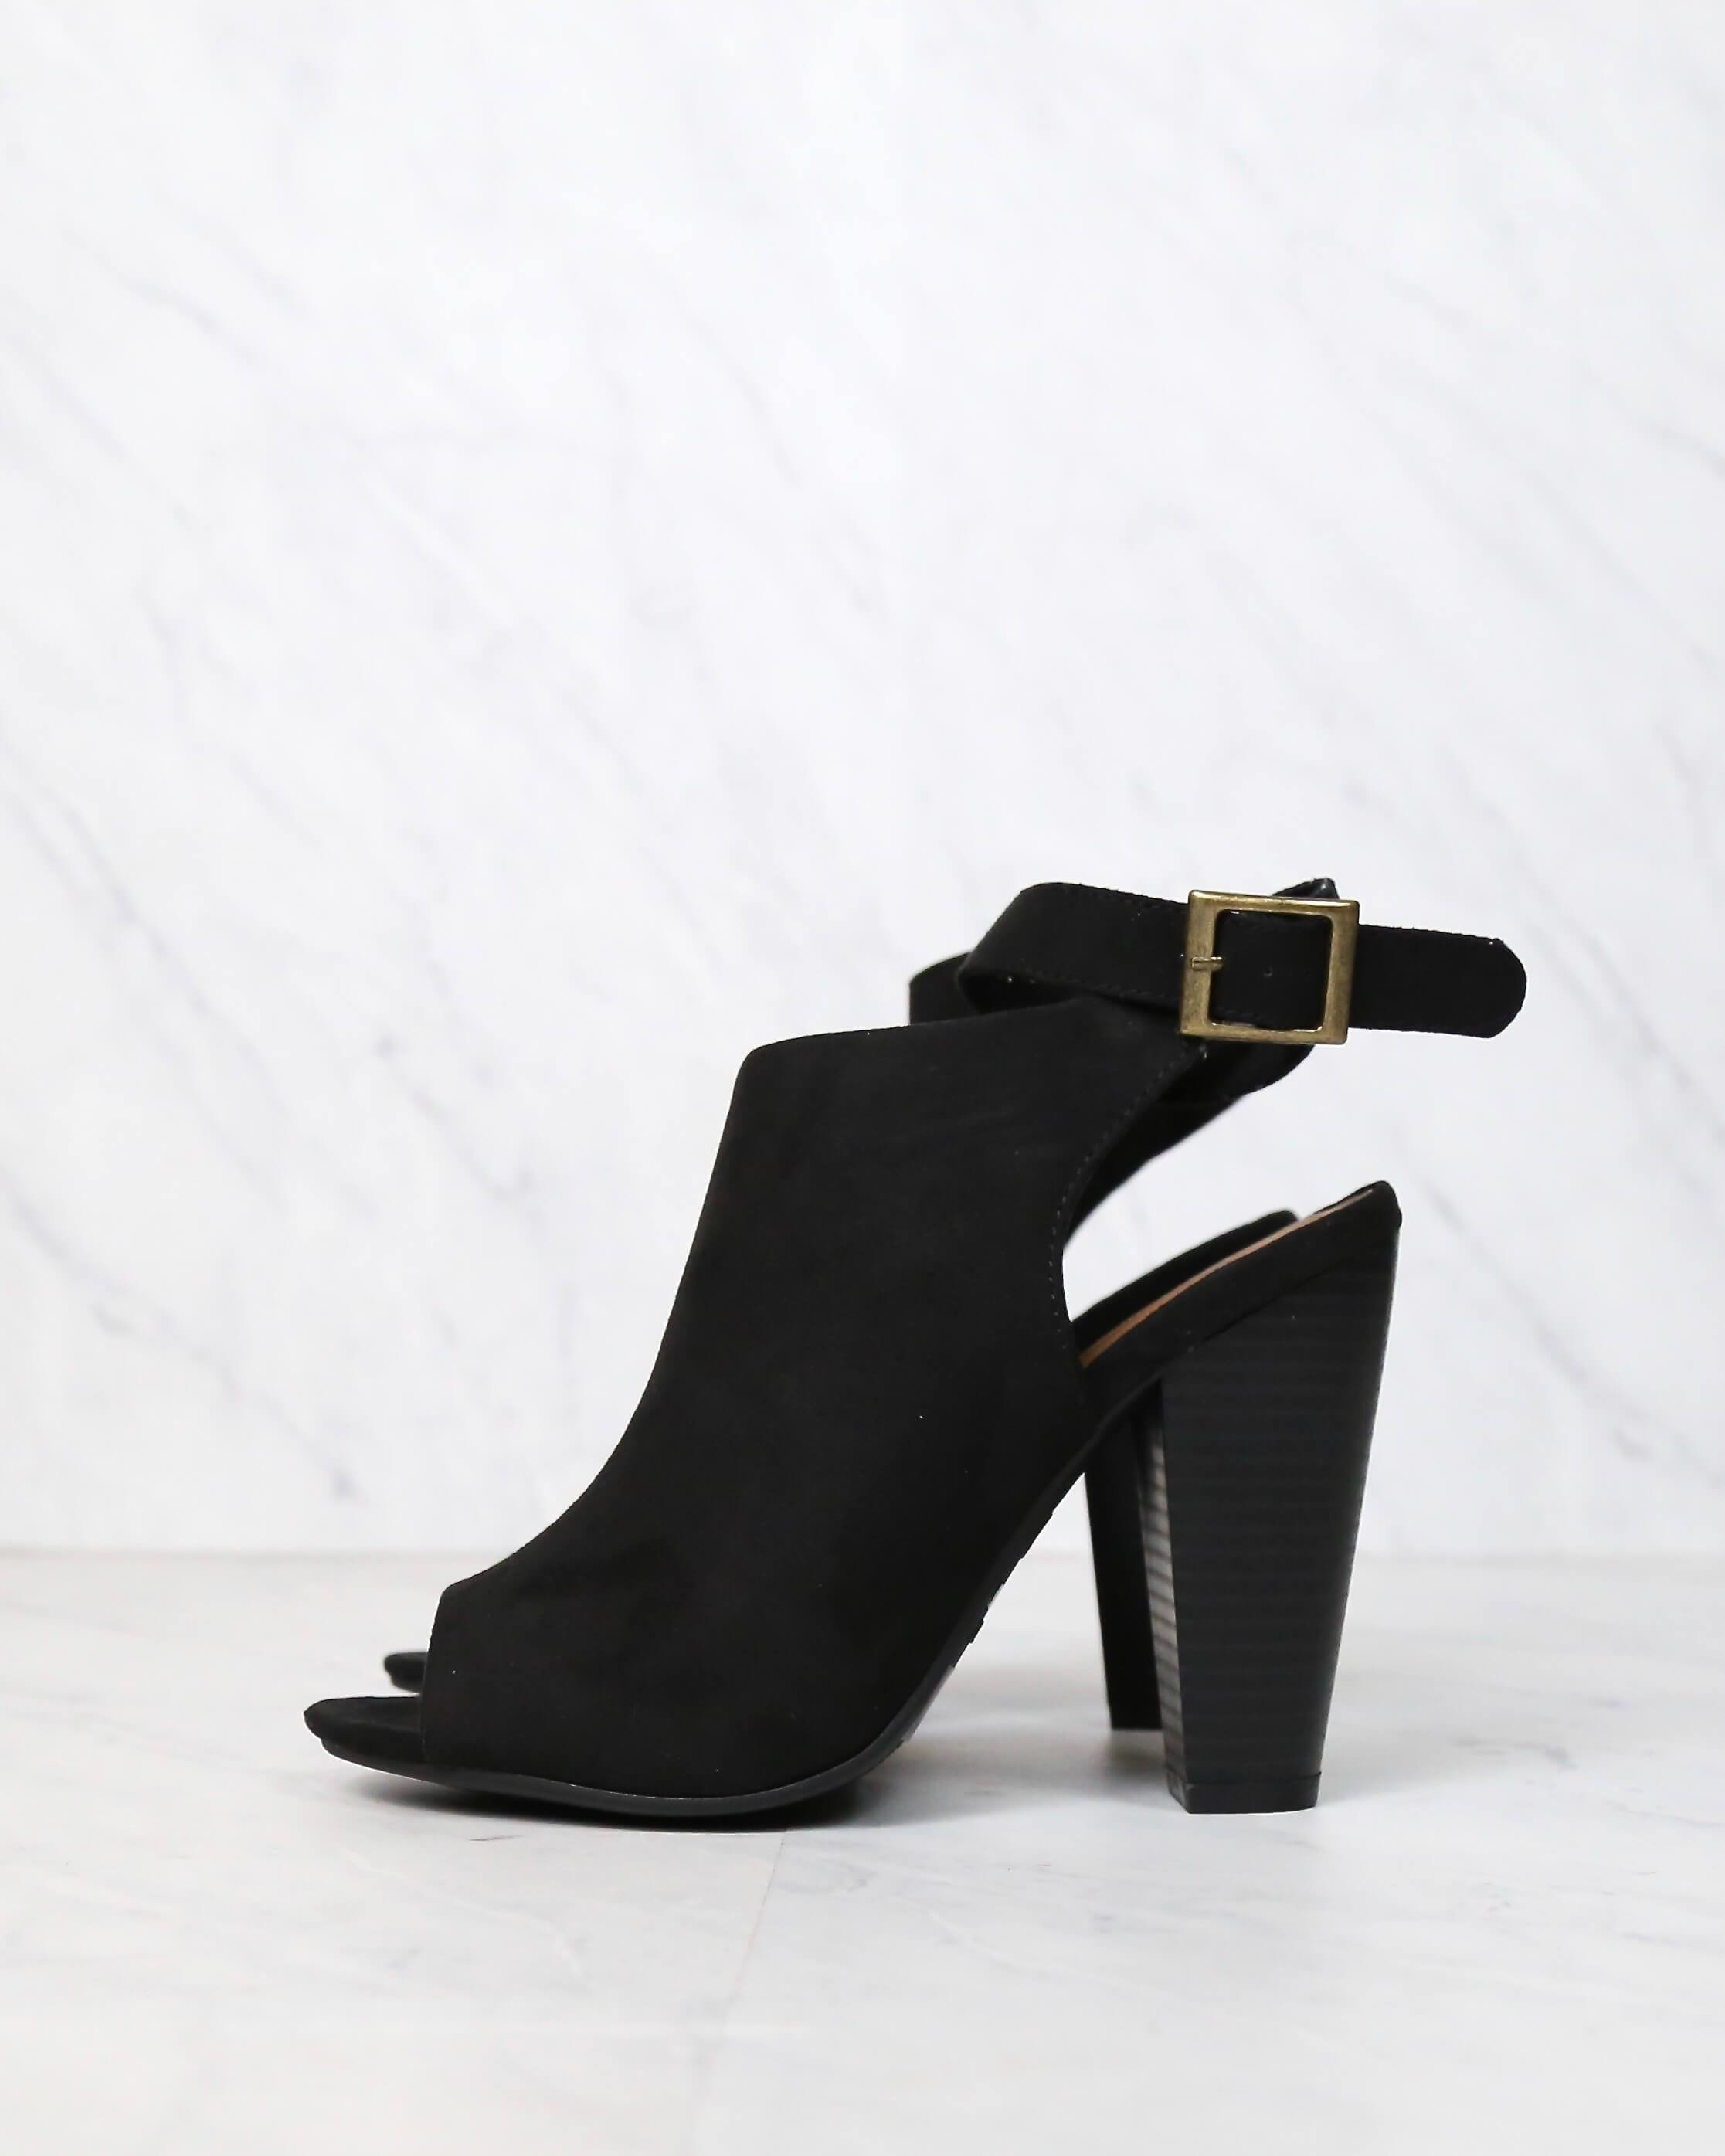 Image of Vegan Suede Wrap Around Ankle Peep Toe Booties in More Colors